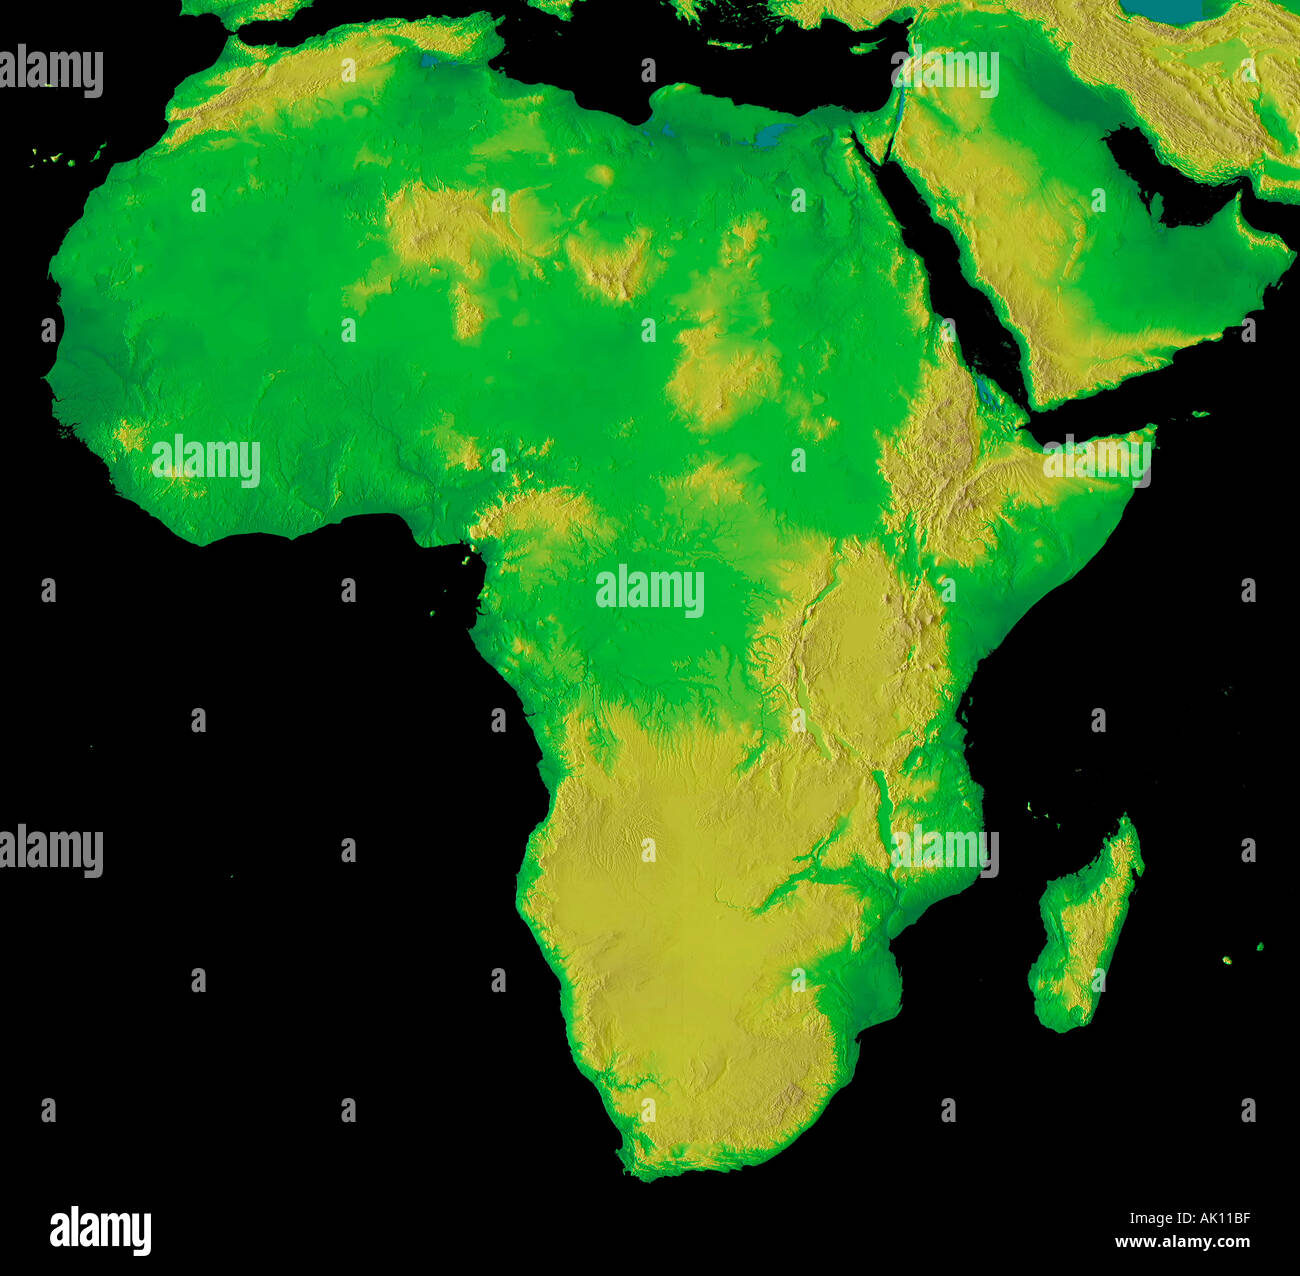 Elevation Map Of Africa With Key.Digital Elevation Map Of Africa Earth From Space Stock Photo